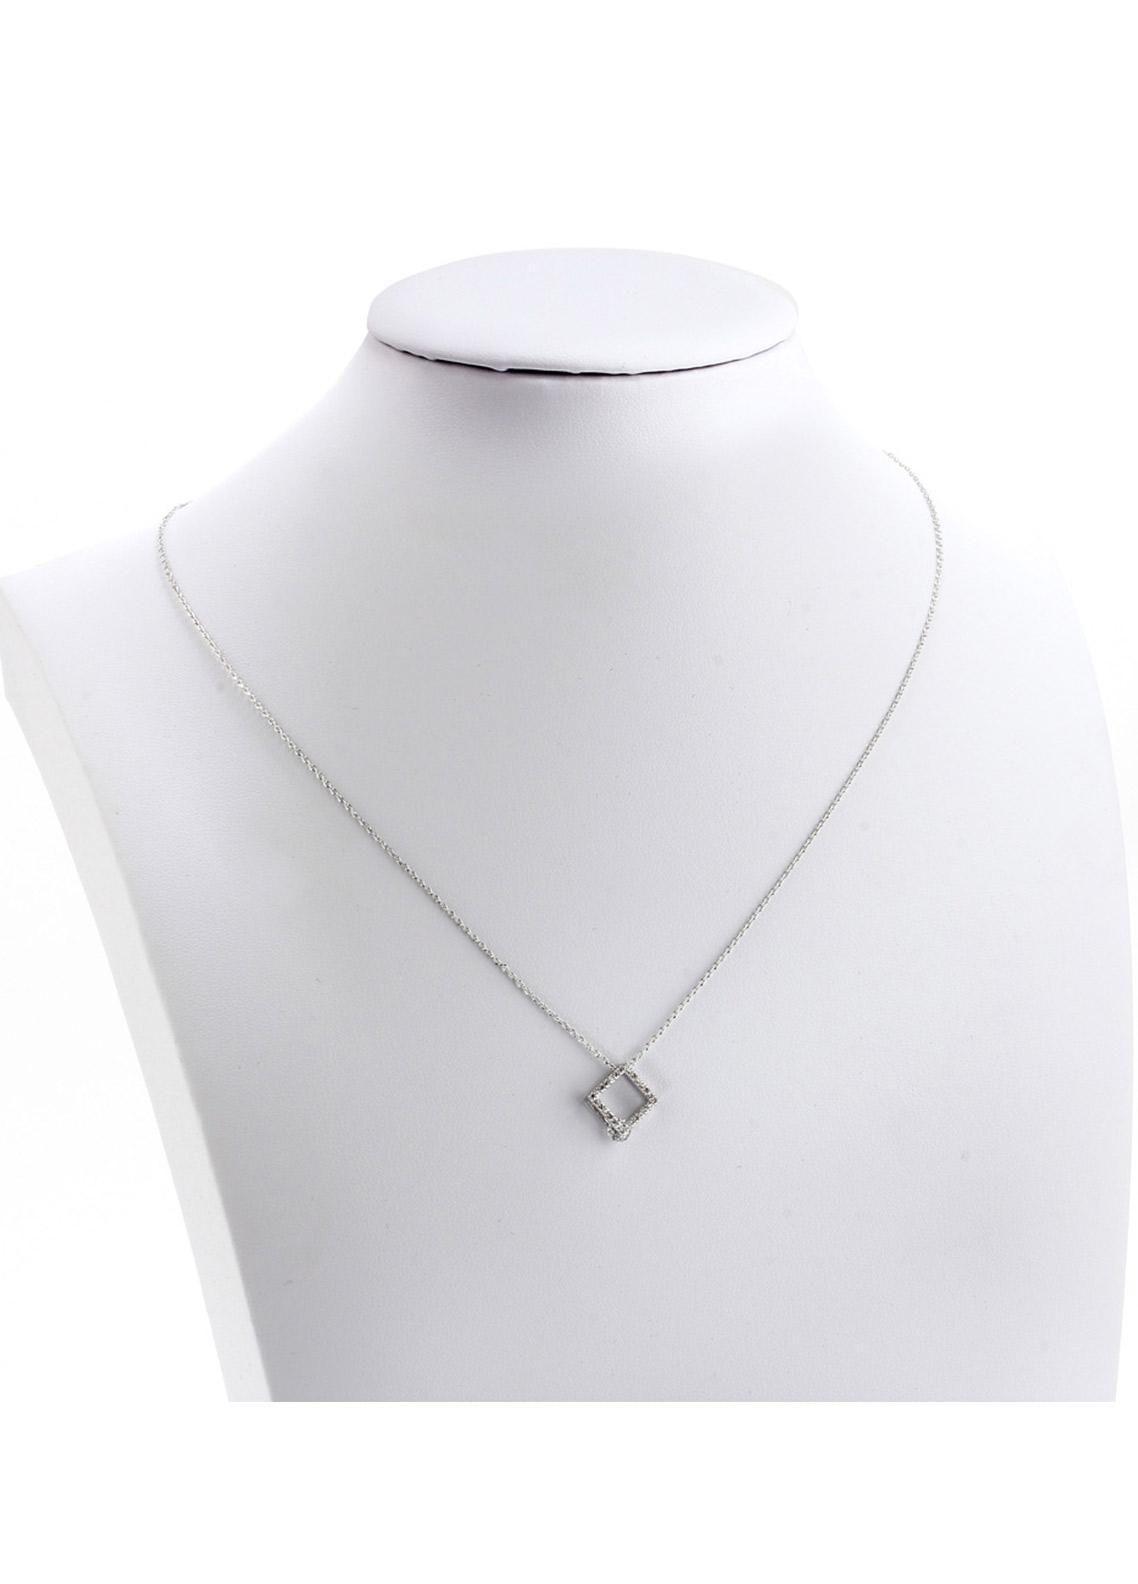 Anna Grace London by Silk Avenue Silver Plated Crystal Square Necklace AGN0040 - Ladies Jewellery